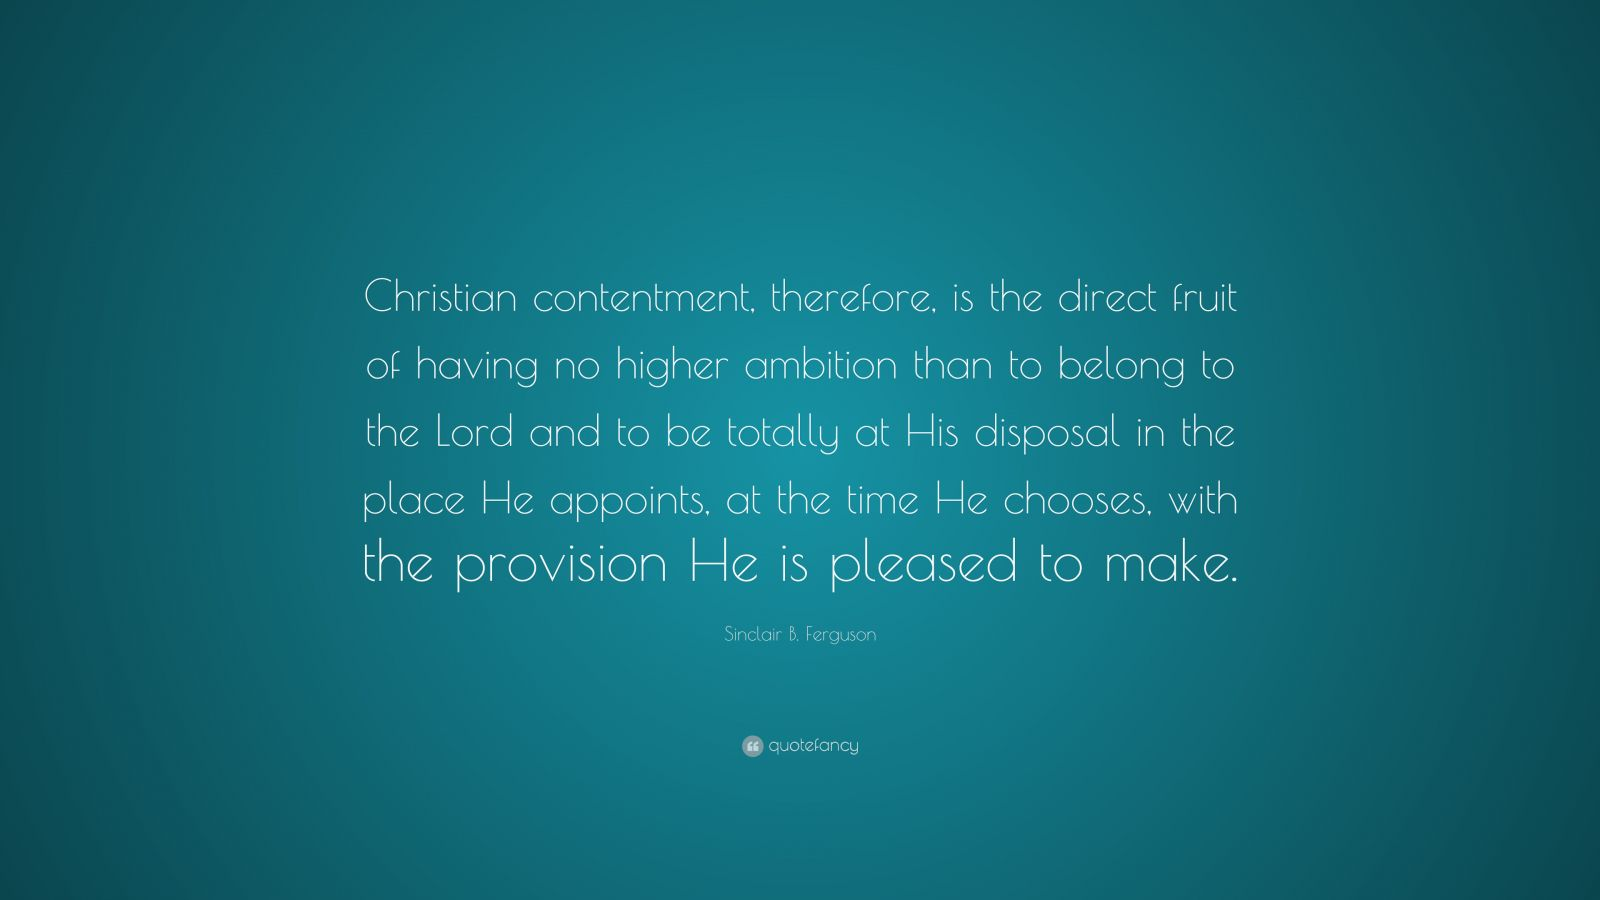 """Sinclair B. Ferguson Quote: """"Christian contentment, therefore, is the direct fruit of having no higher ambition than to belong to the Lord and to be totally at His disposal in the place He appoints, at the time He chooses, with the provision He is pleased to make."""""""